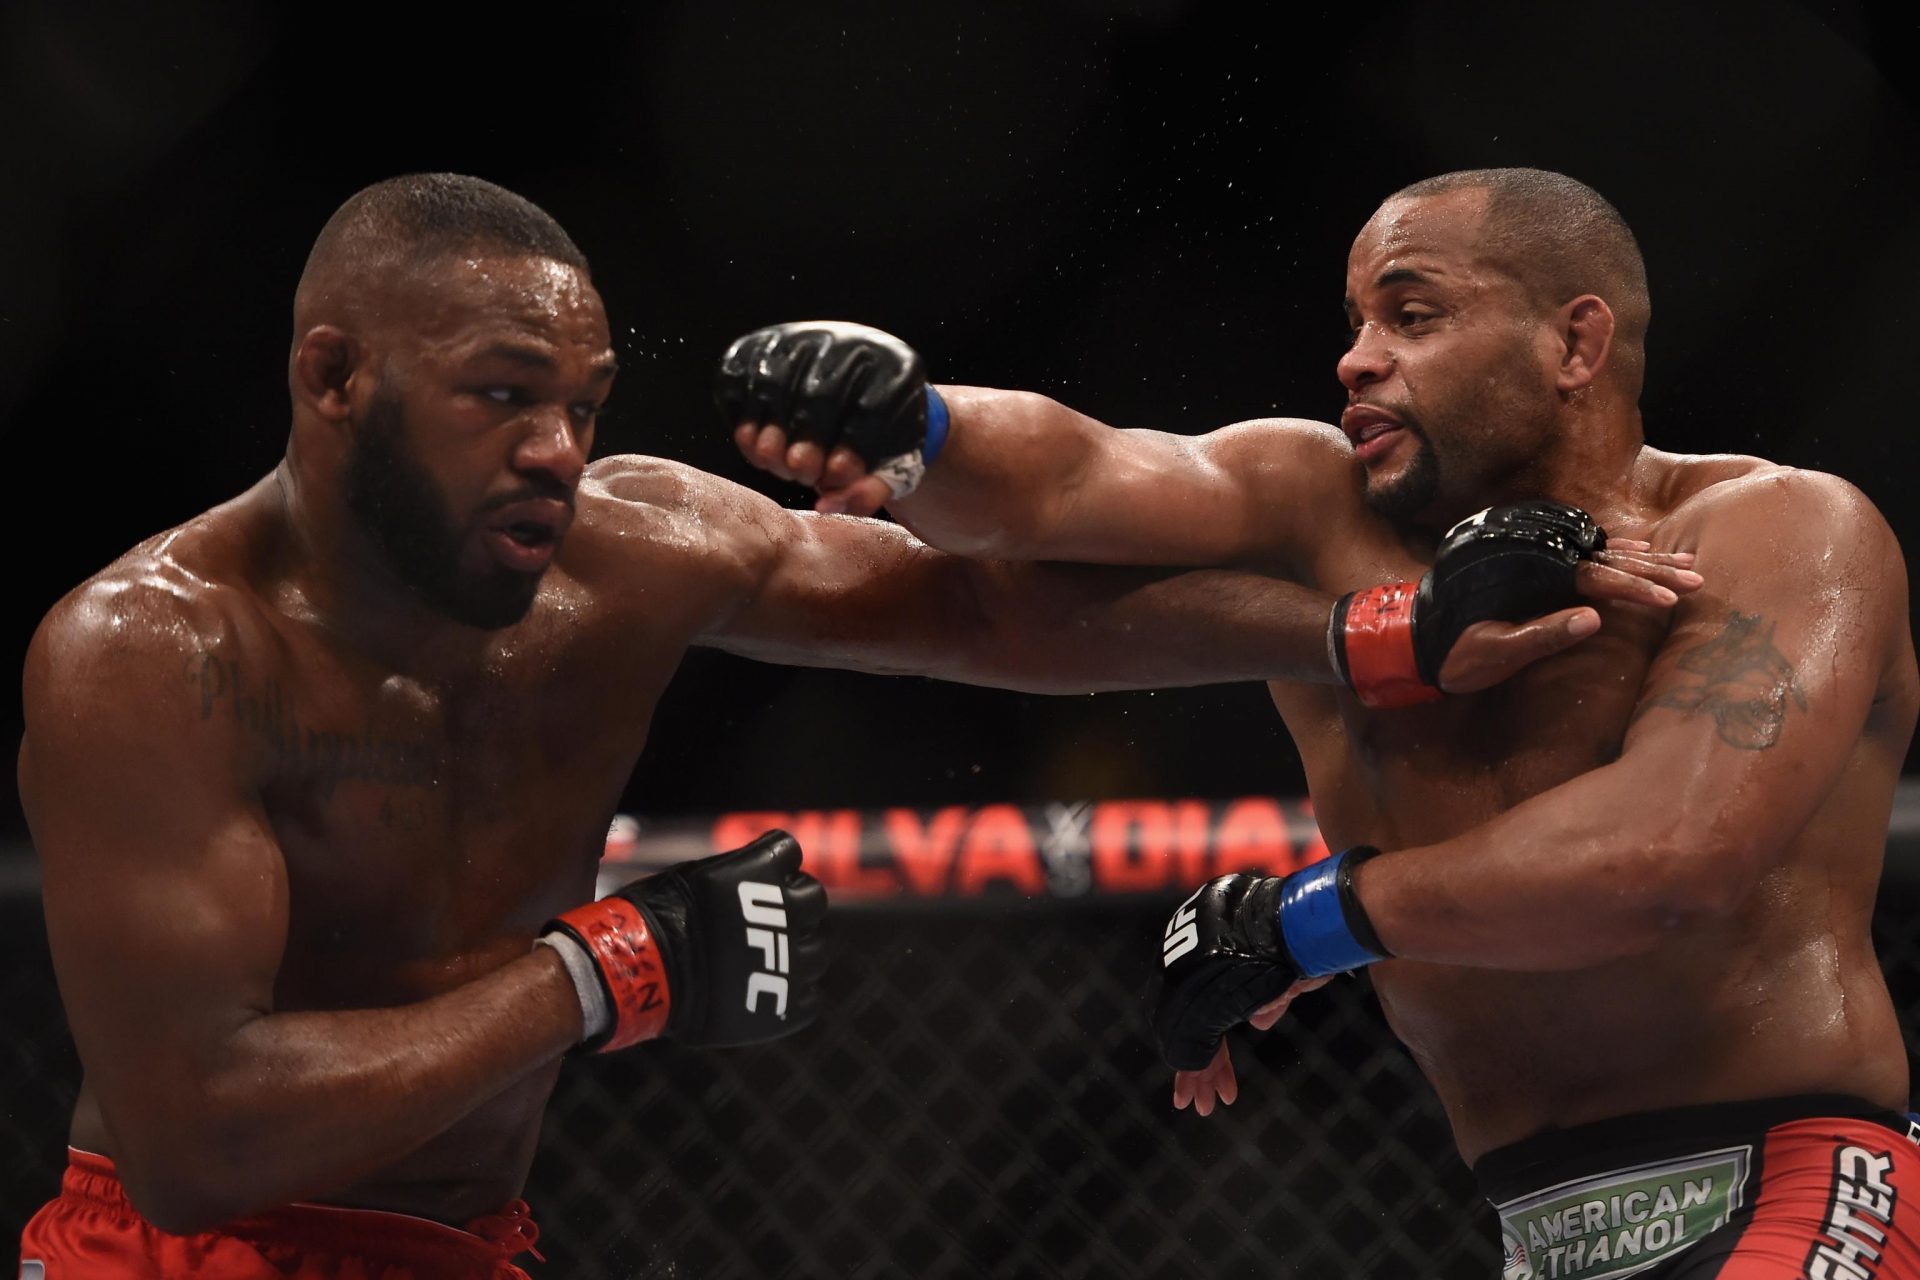 Jon Jones fires back at Daniel Cormier for saying he gave up the belt to avoid Reyes rematch - Jones